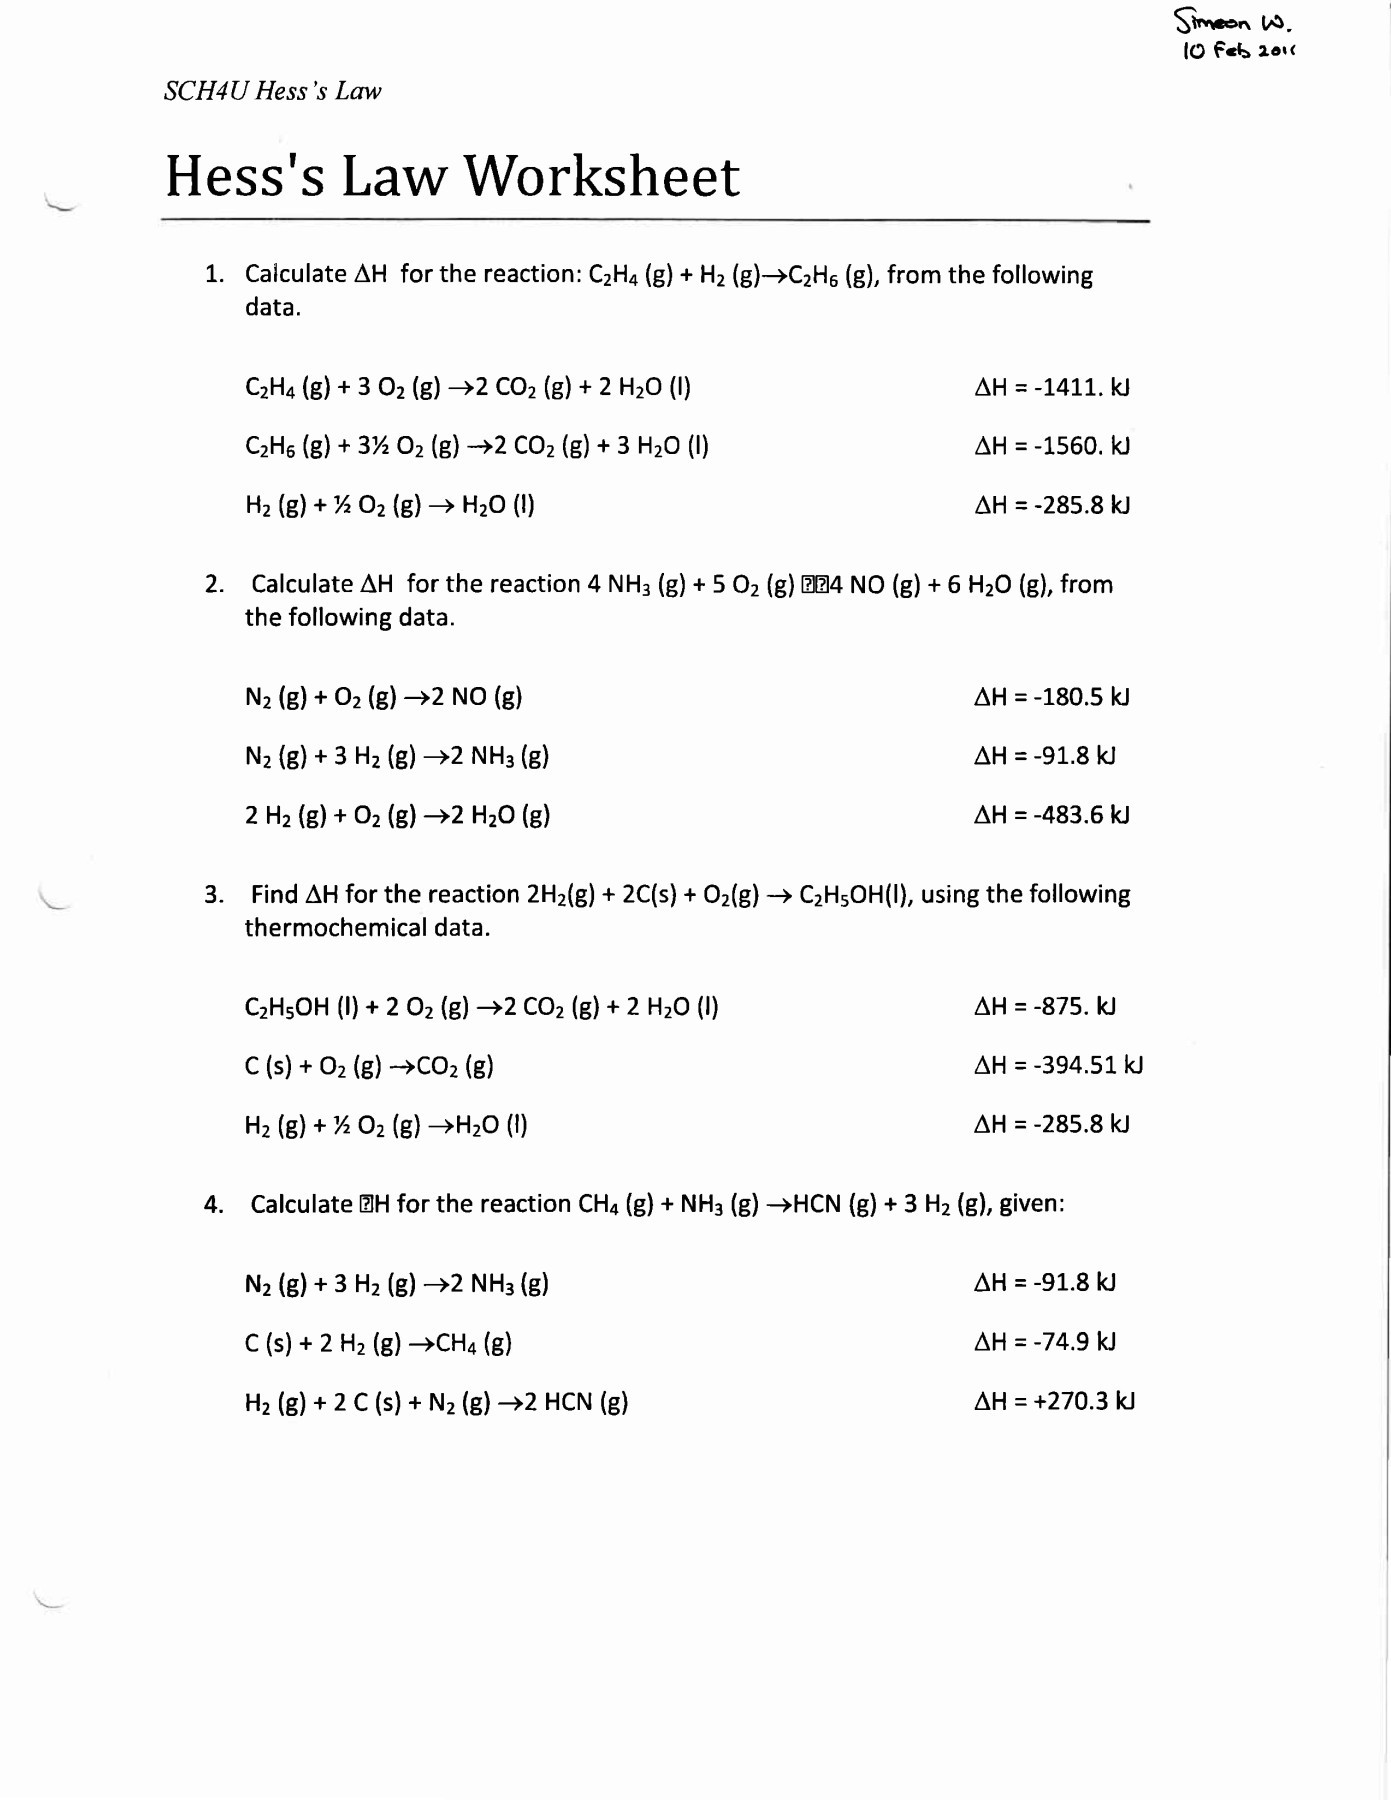 Worksheets Hess Law Worksheet Cheatslist Free Worksheets